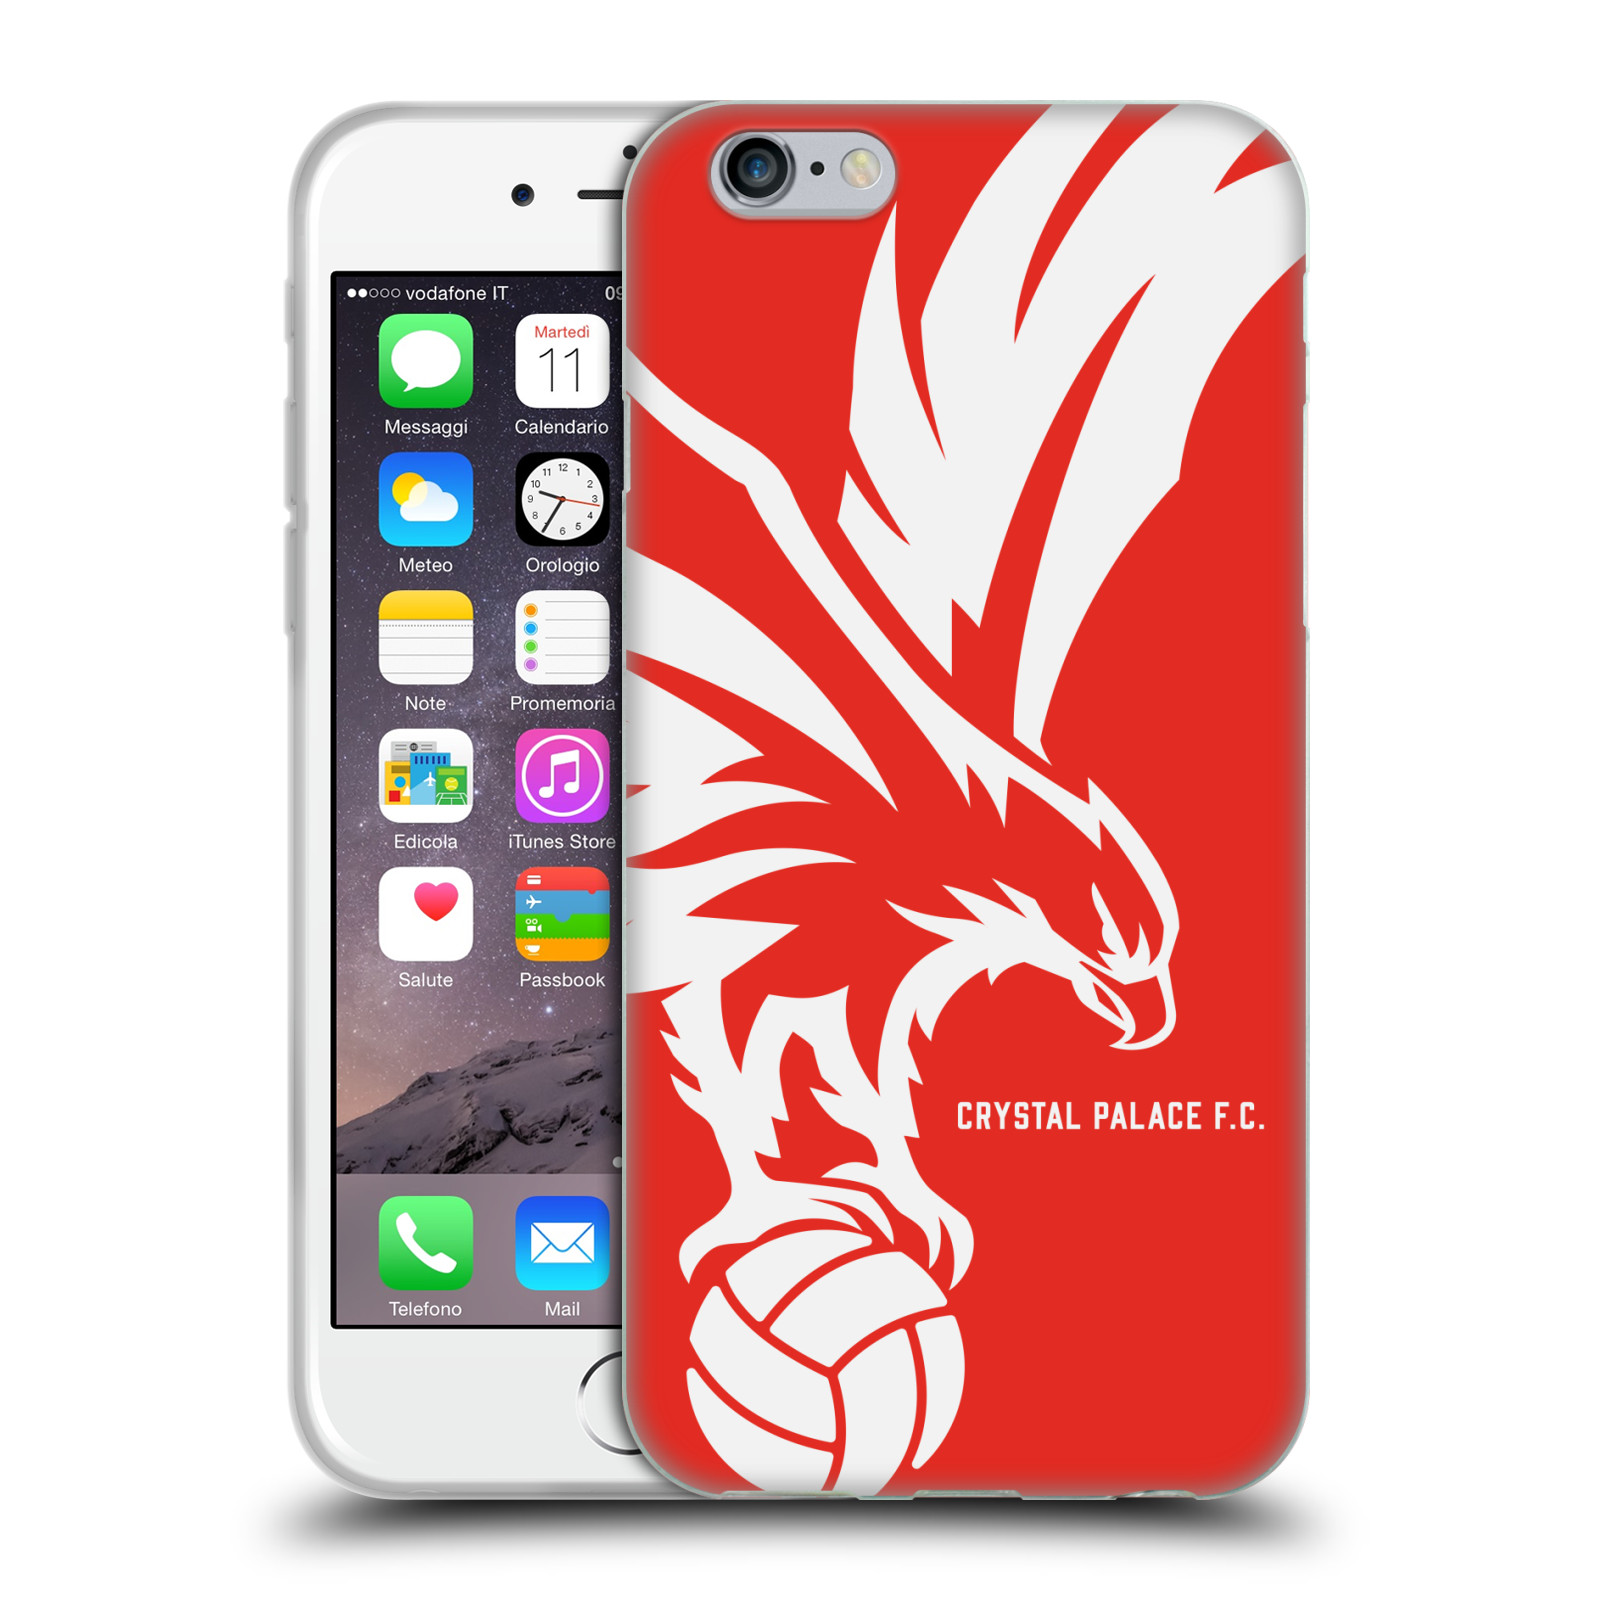 CRYSTAL-PALACE-FC-2017-18-CREST-AND-PATTERNS-GEL-CASE-FOR-APPLE-iPHONE-PHONES